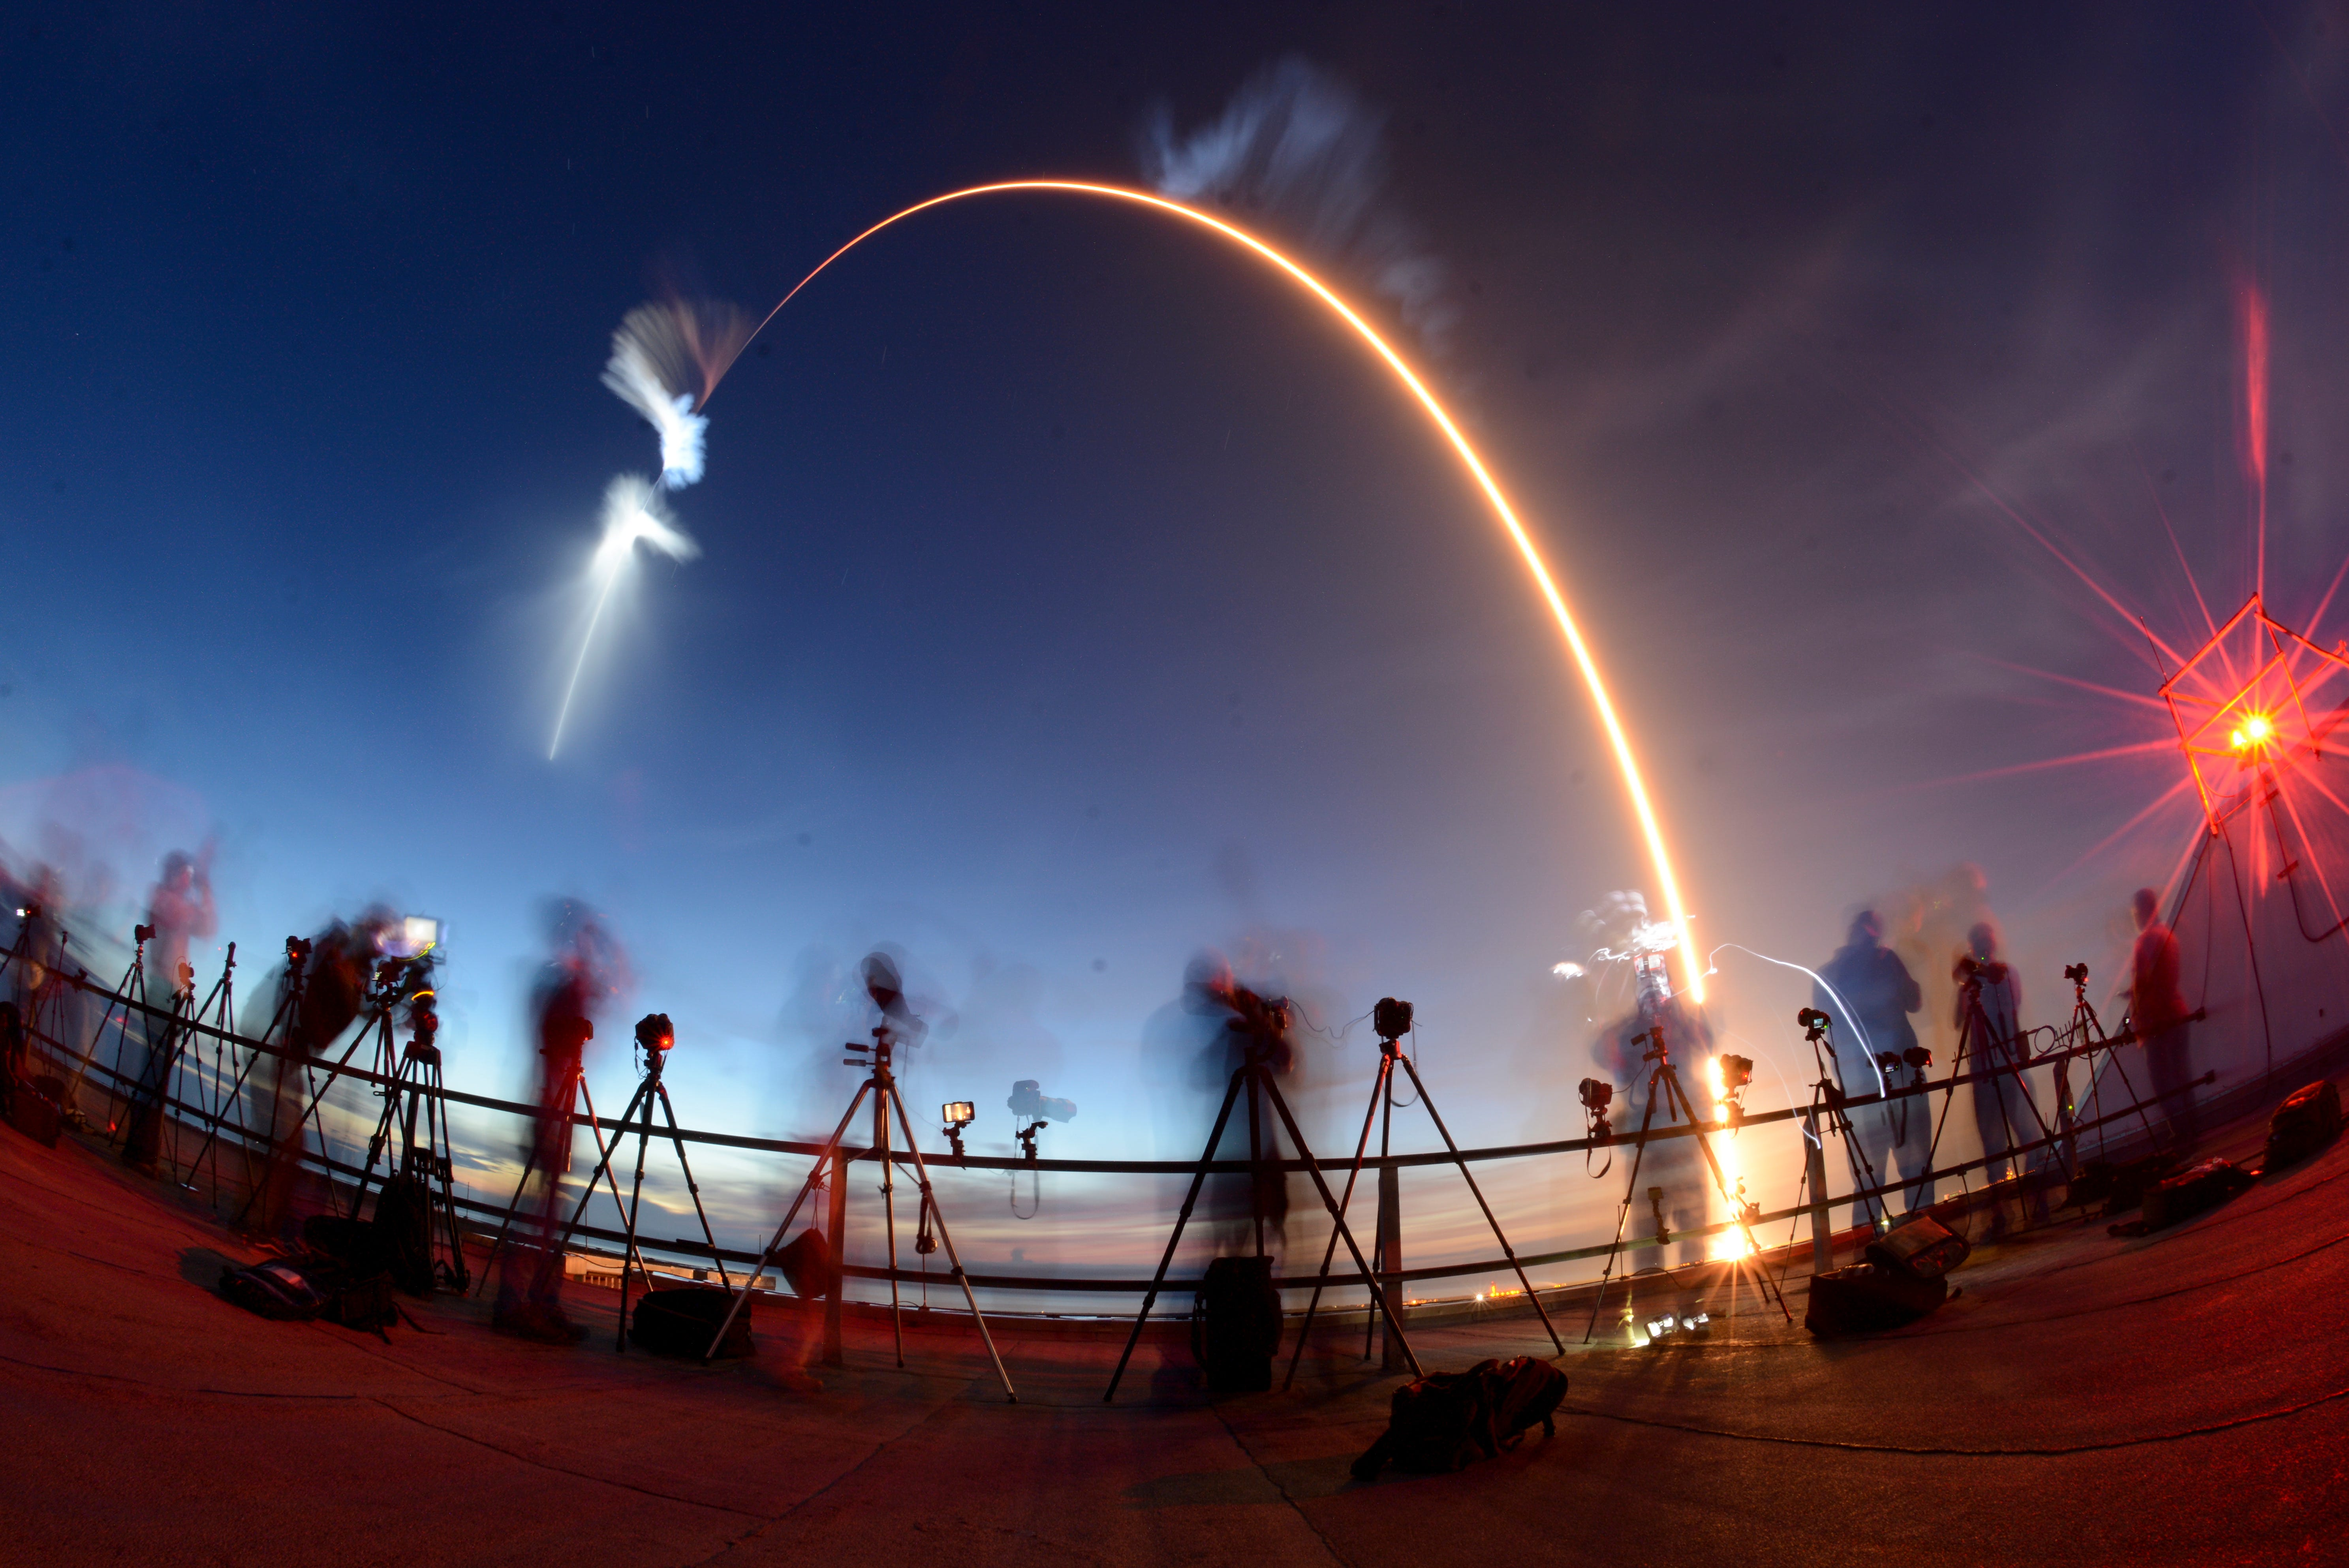 636658535305286354-uscpcent02-70sk4ef0hf6wqwtekco-original SpaceX Falcon 9, Dragon blast off from Cape Canaveral on stunning pre-dawn flight to ISS